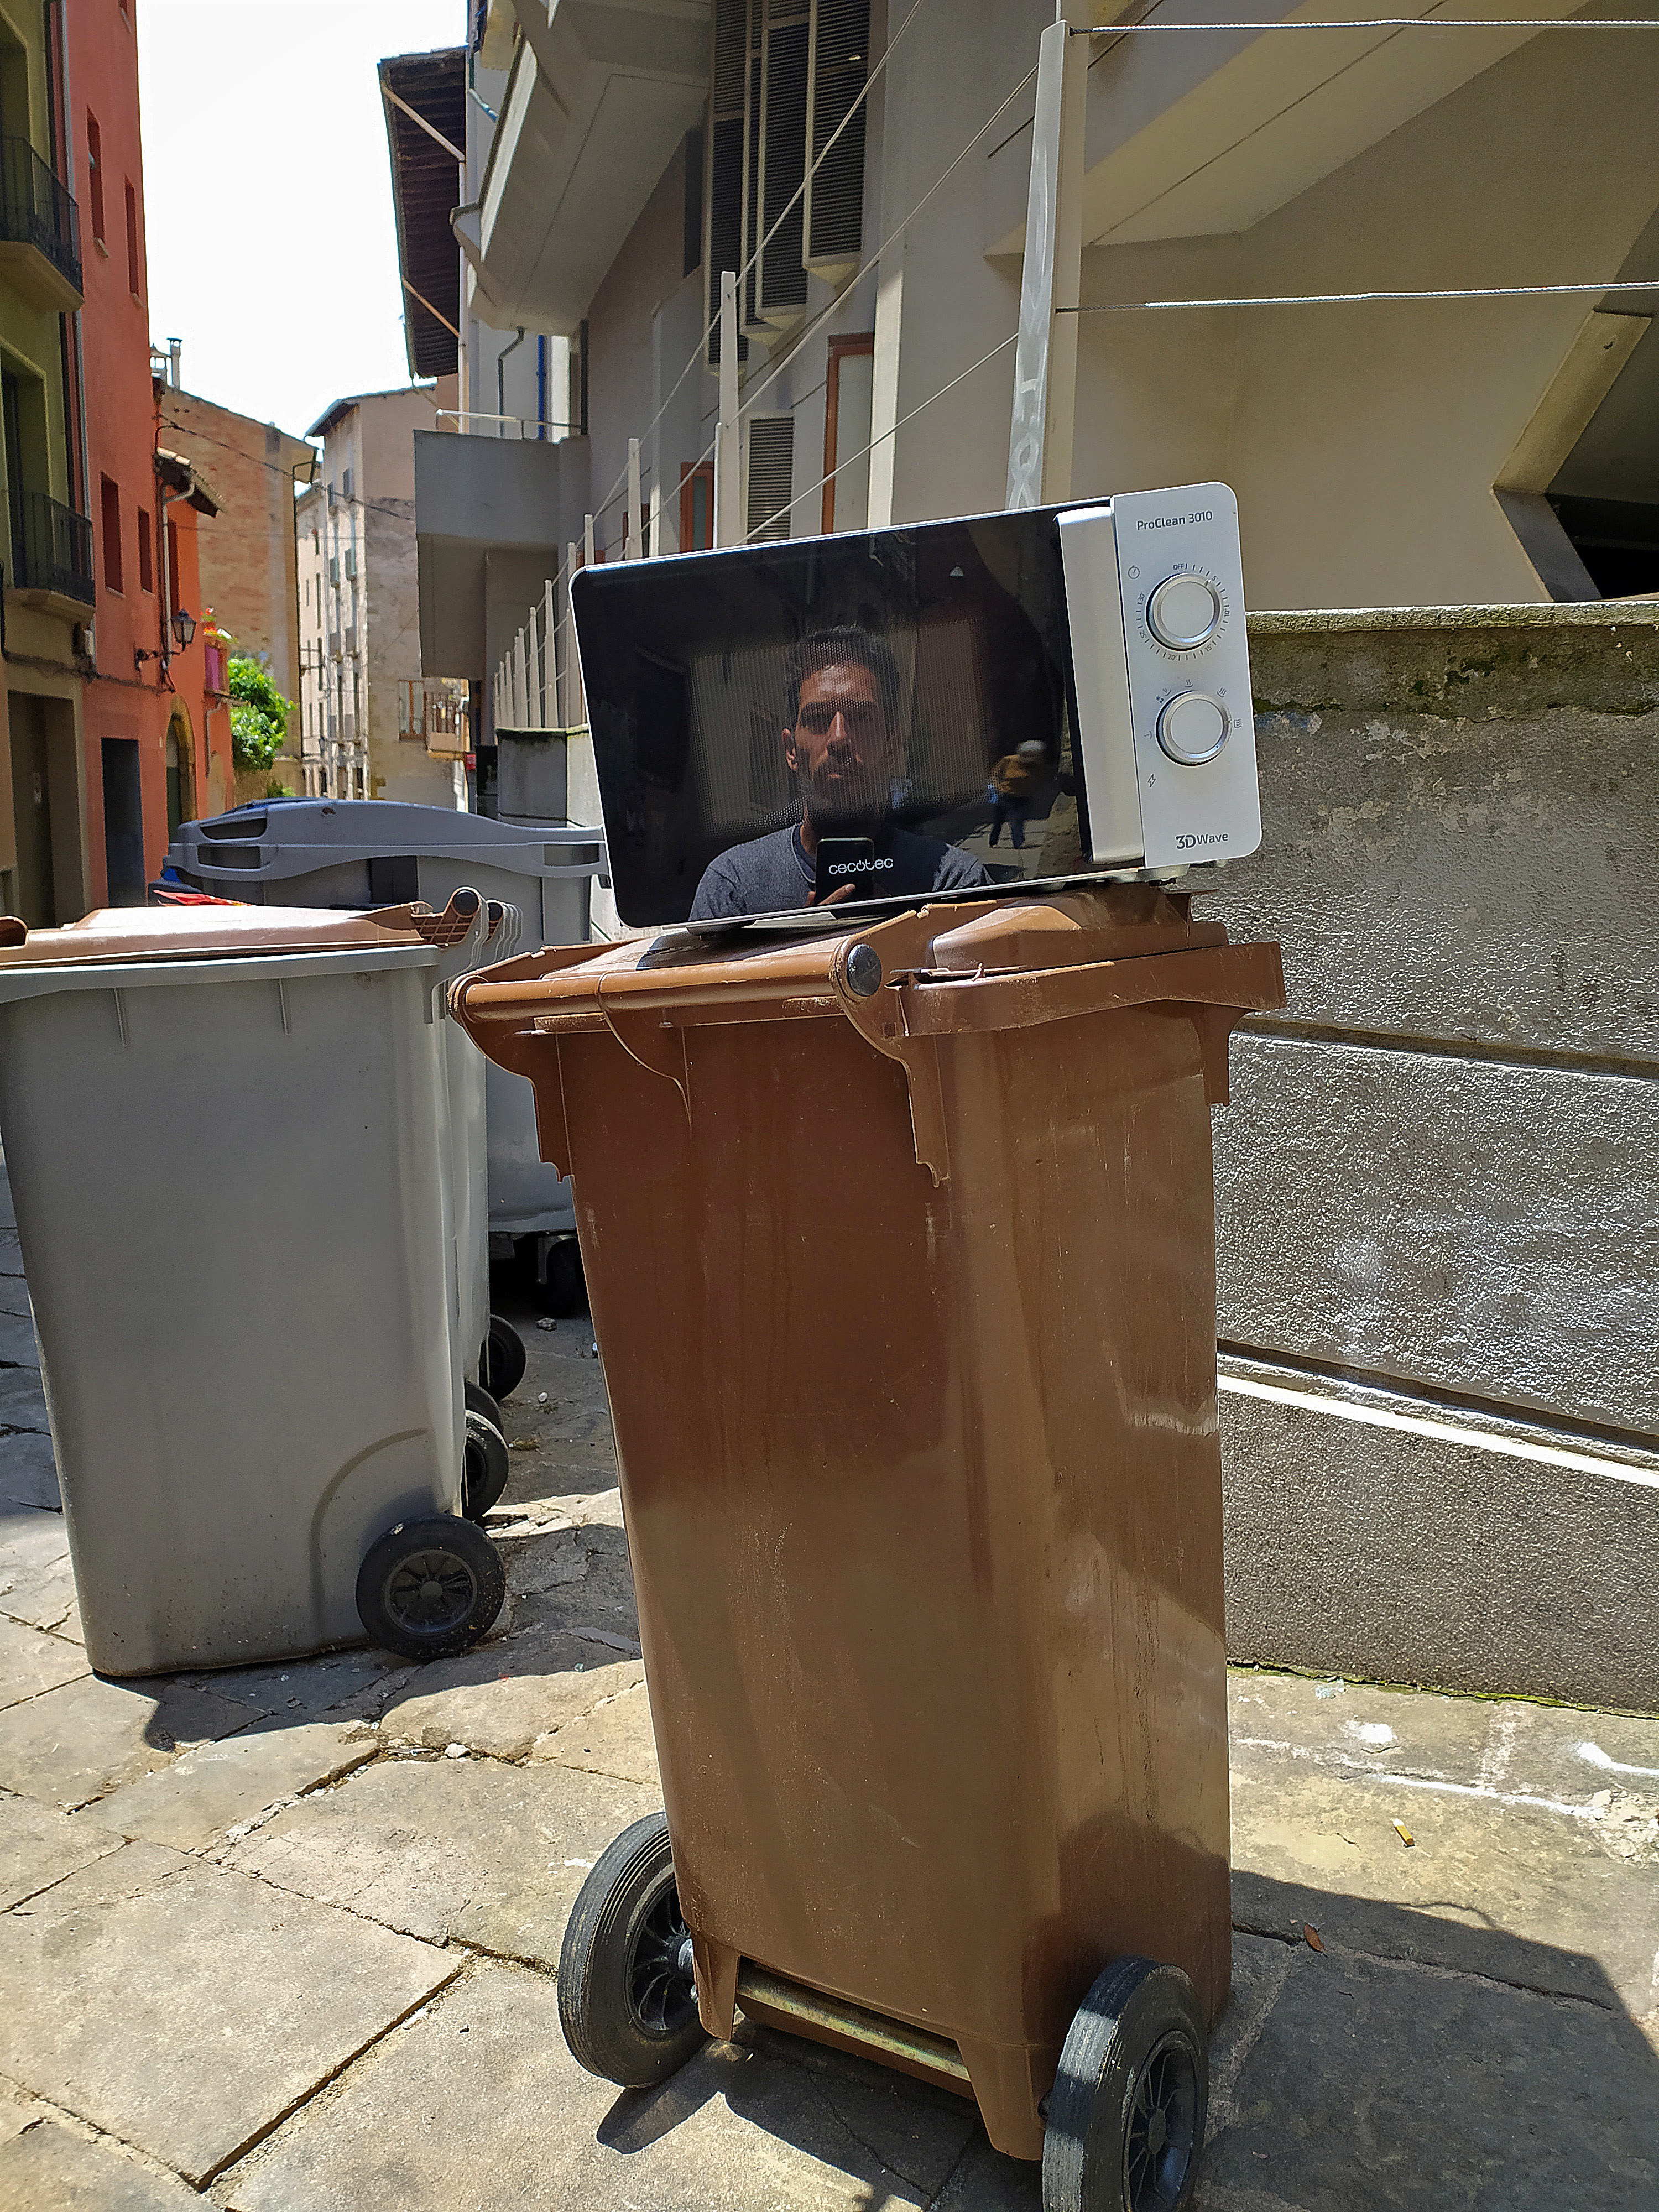 Someone is reflected in a microwave atop a garbage can on the street